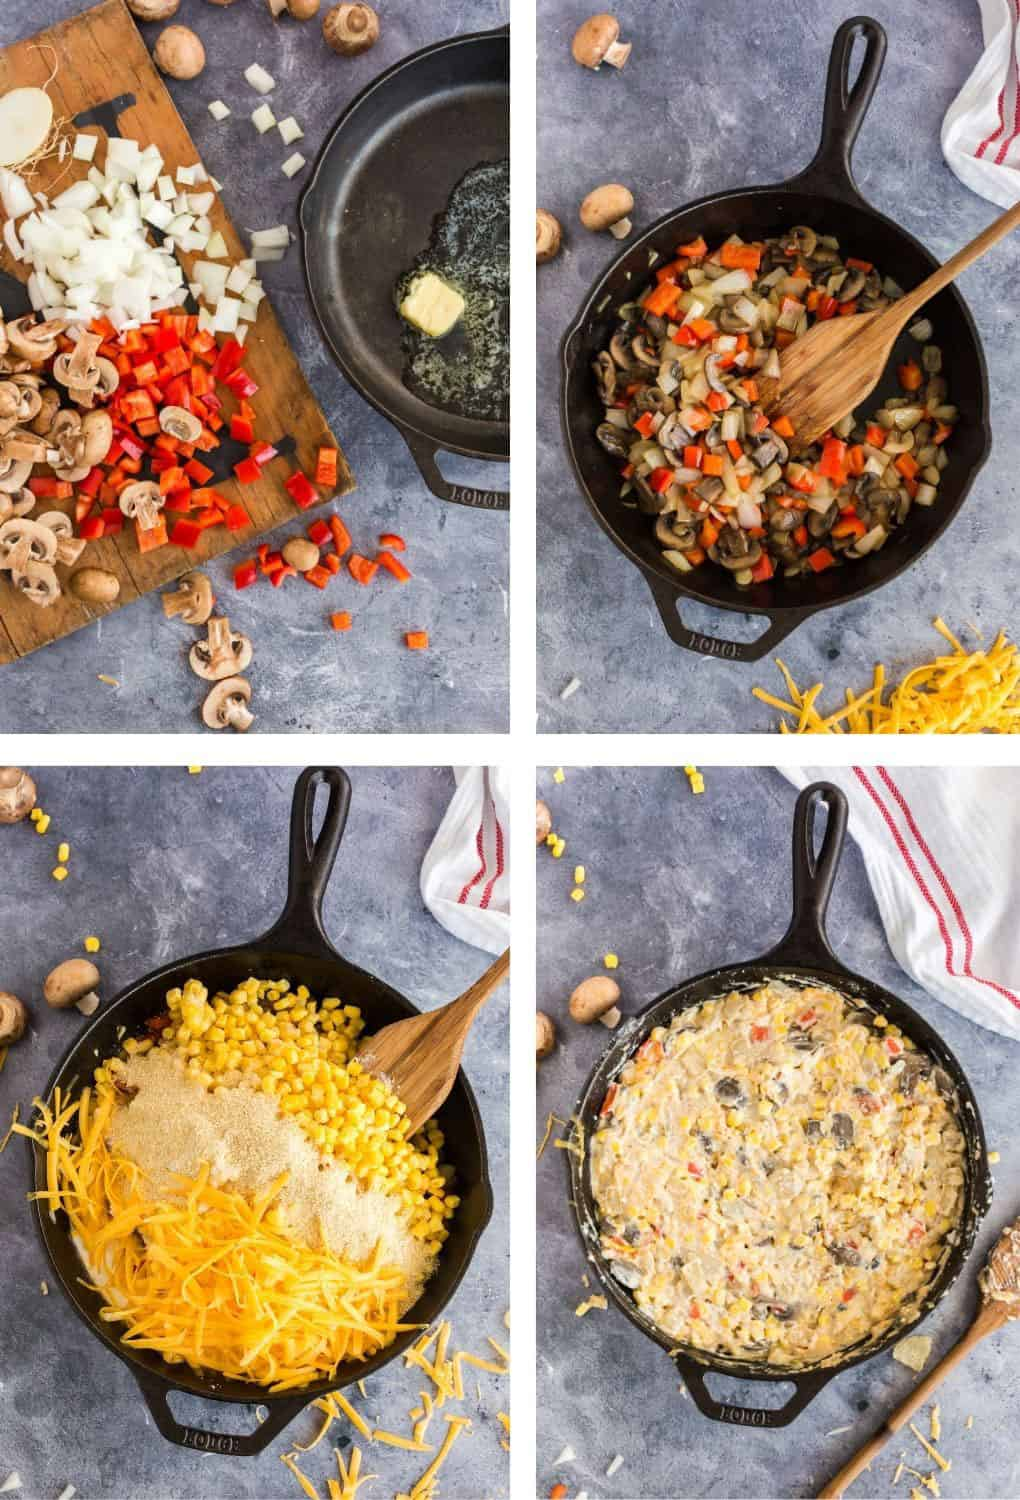 Making a vegetable casserole in a skillet